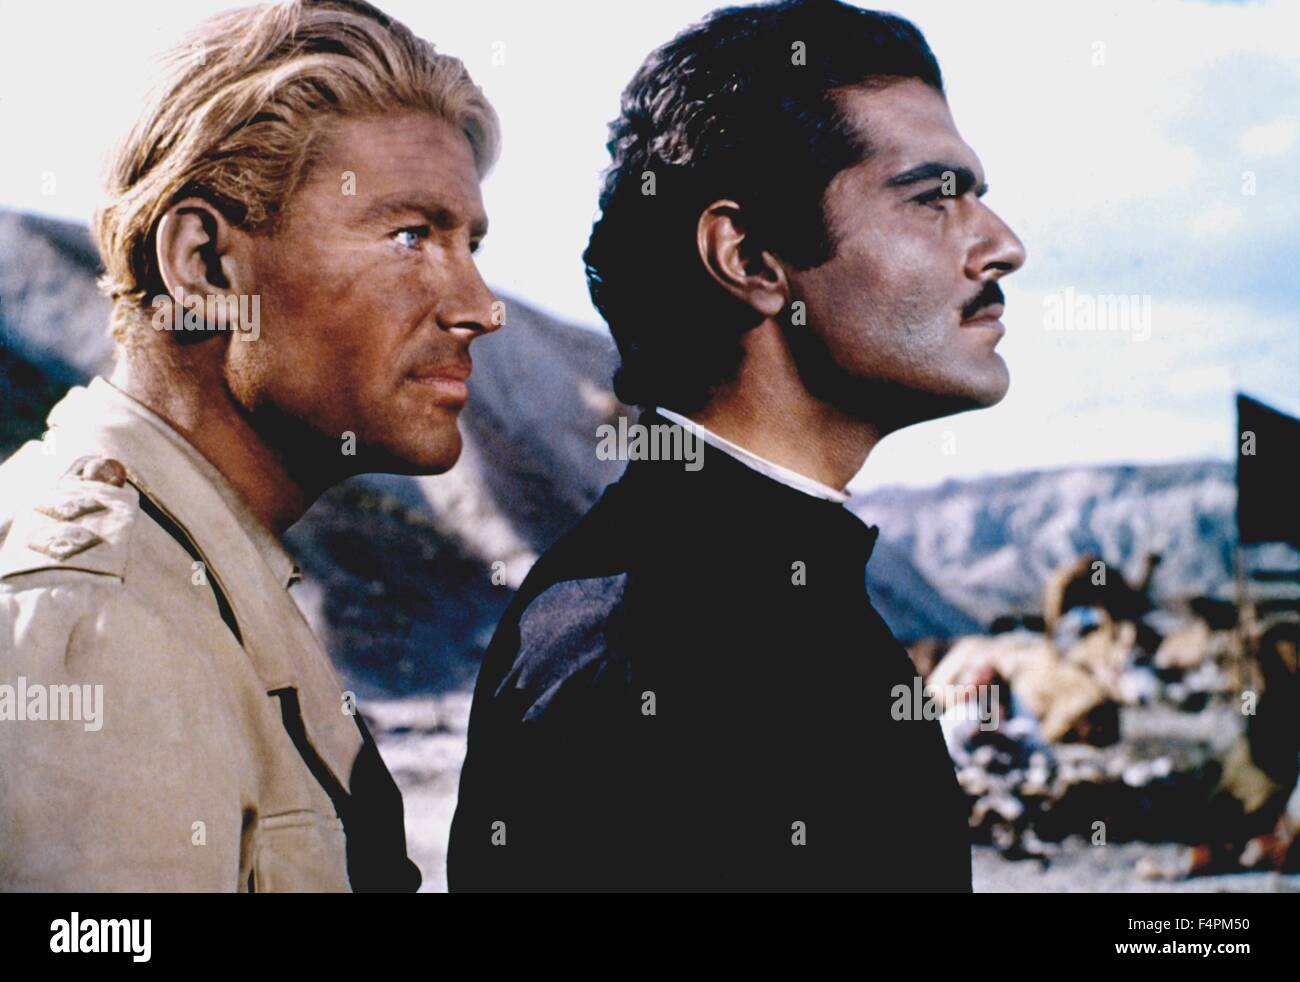 Peter O'Toole and Omar Sharif / Lawrence of Arabia / 1962 directed by David Lean  [Columbia Pictures] - Stock Image